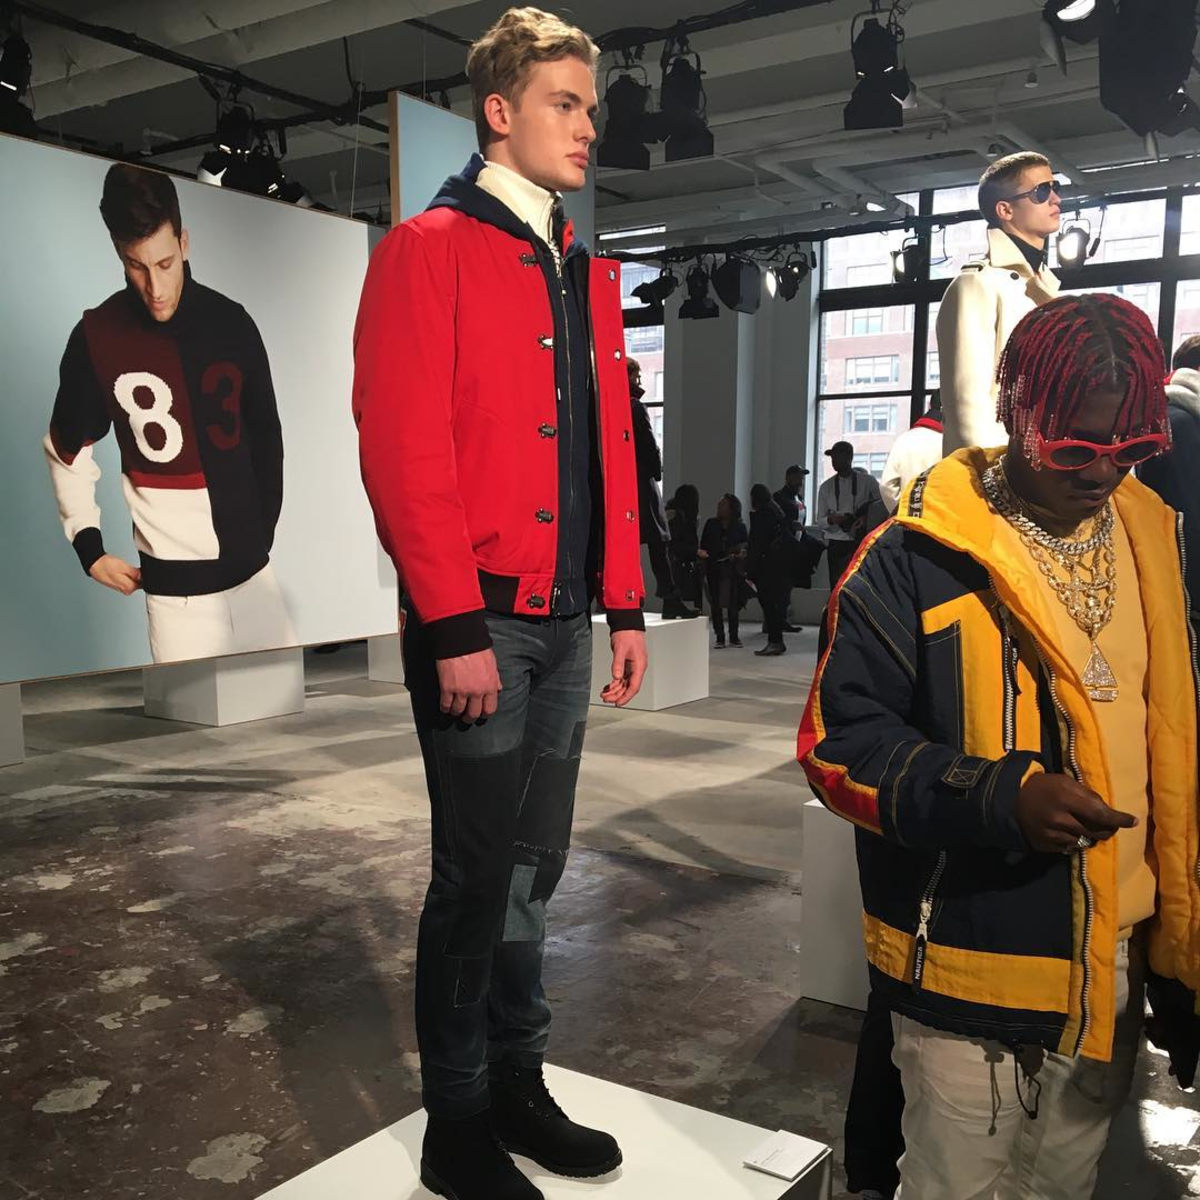 Lil Yachty at Nautica's fall 2017 presentation during New York Fashion Week: Men's. Photo: @nautica/Instagram